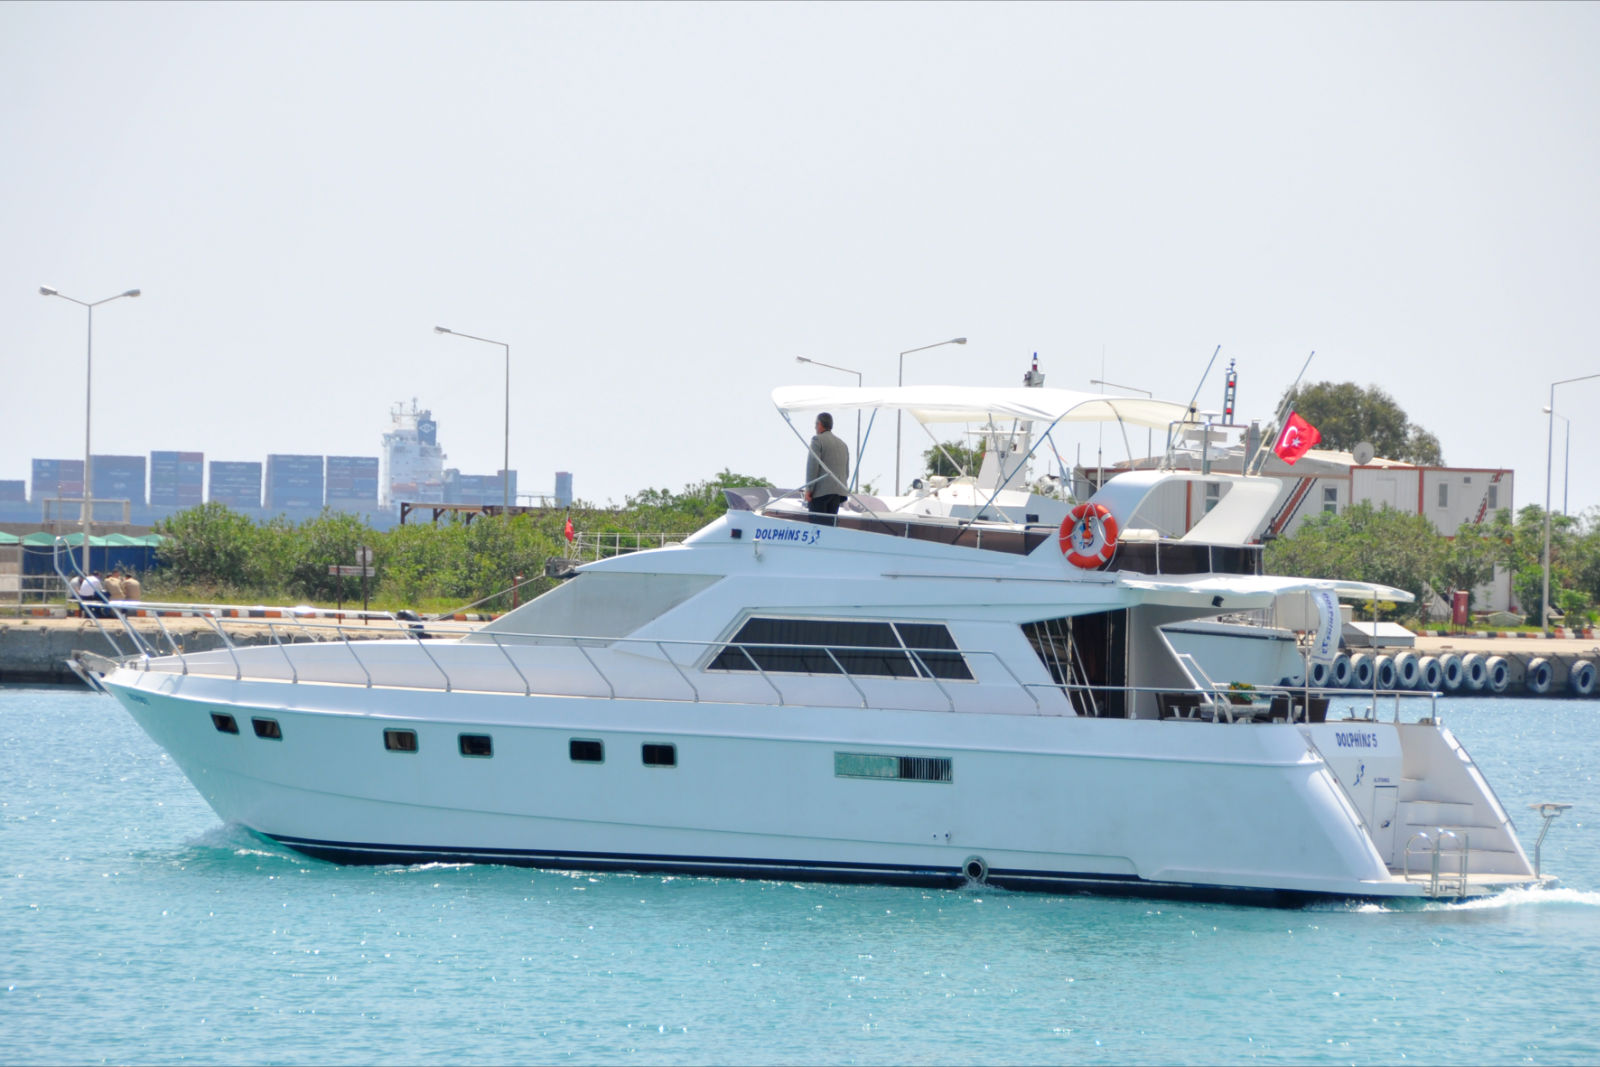 Yacht Crew Luxembourg: L6010 Model Rental Yacht